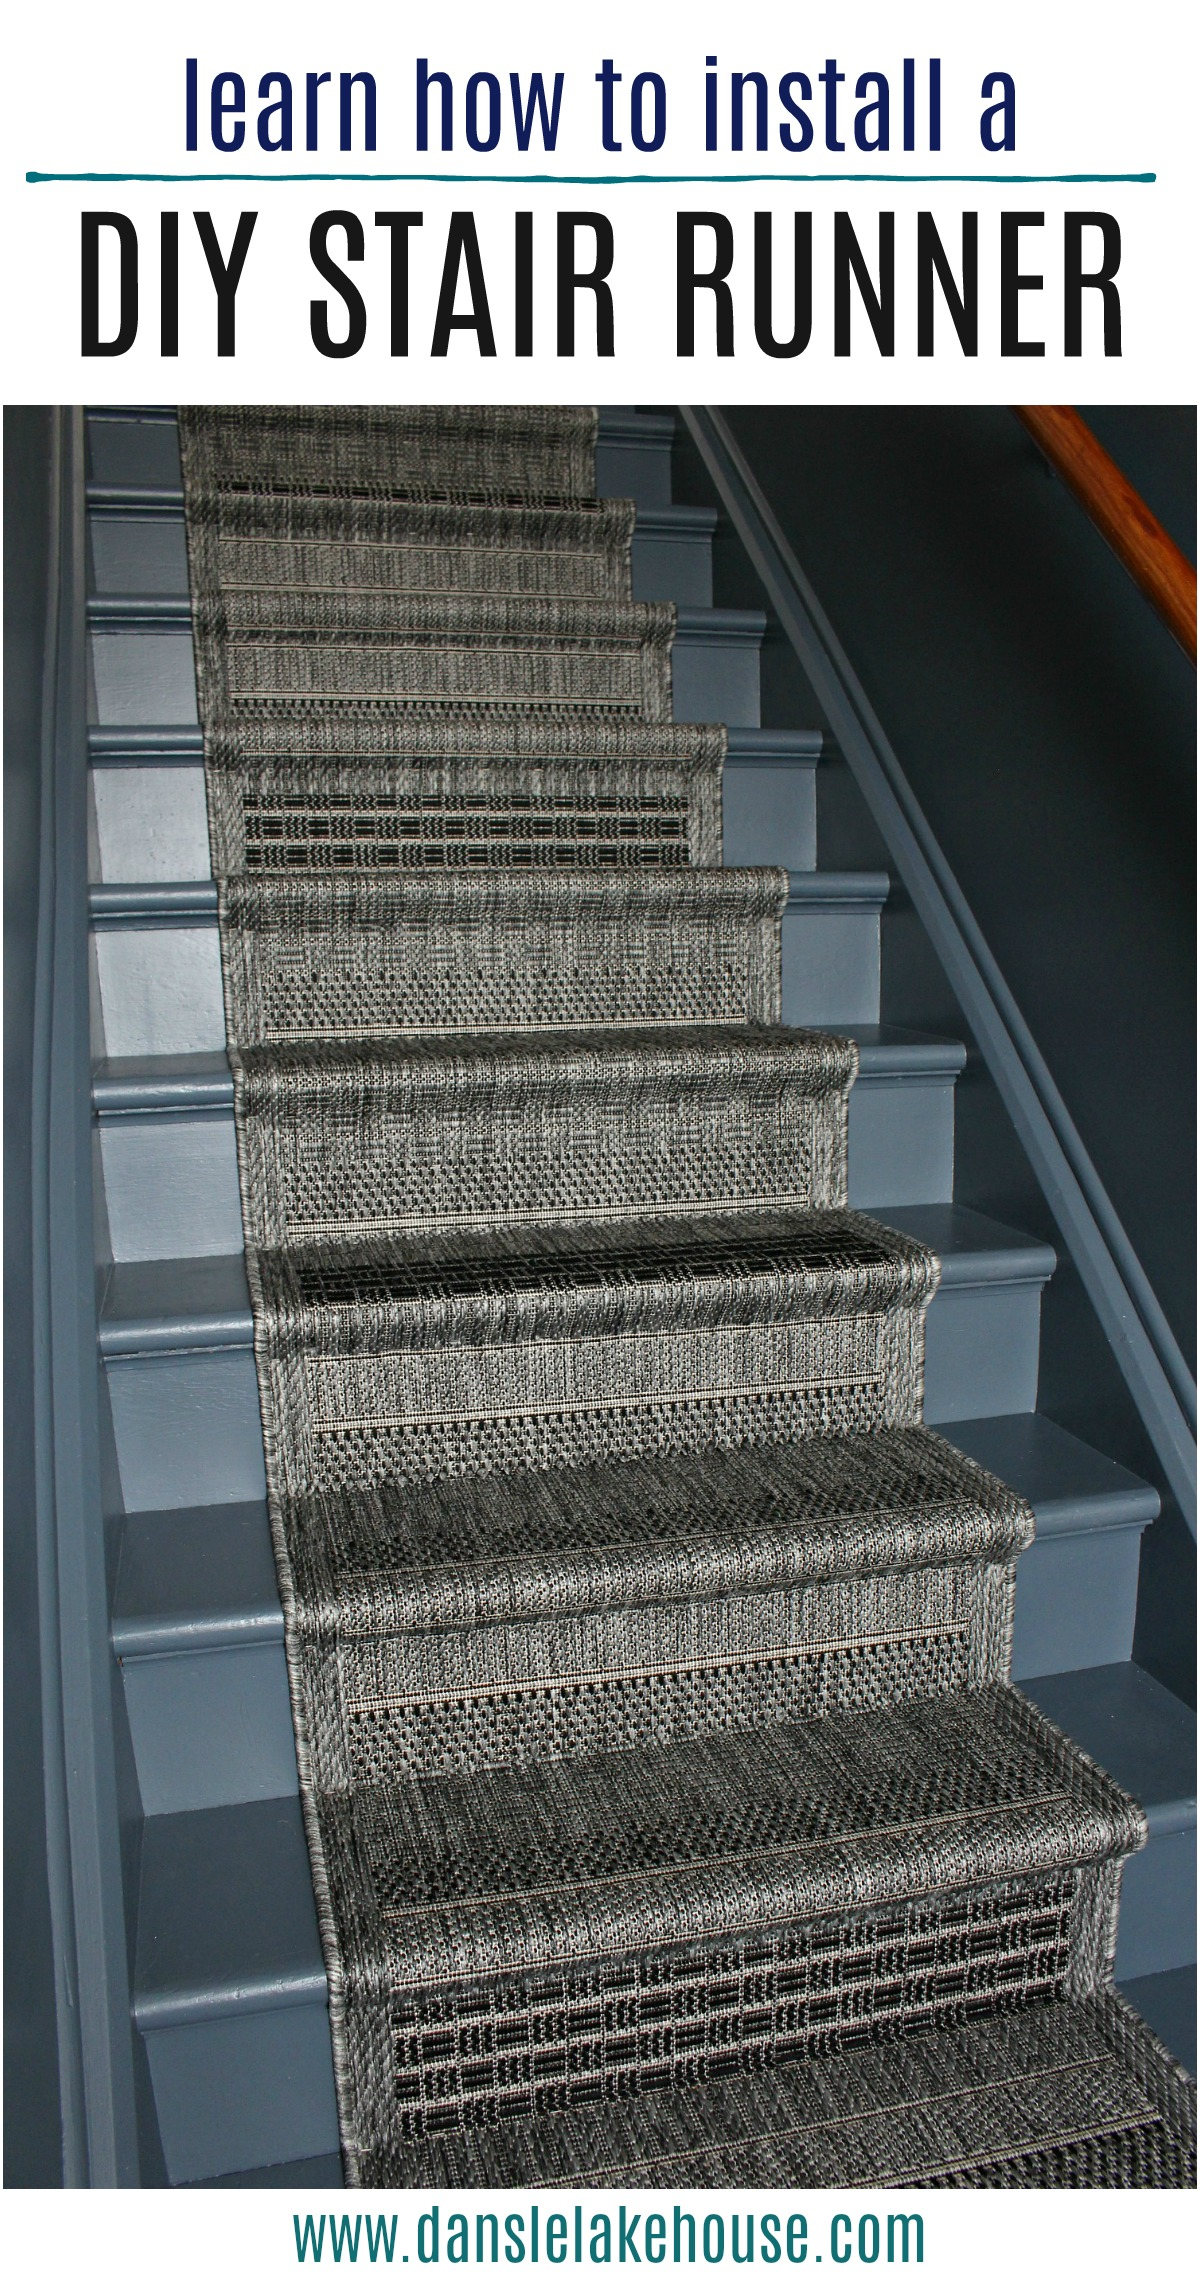 learn how to install a DIY stair runner